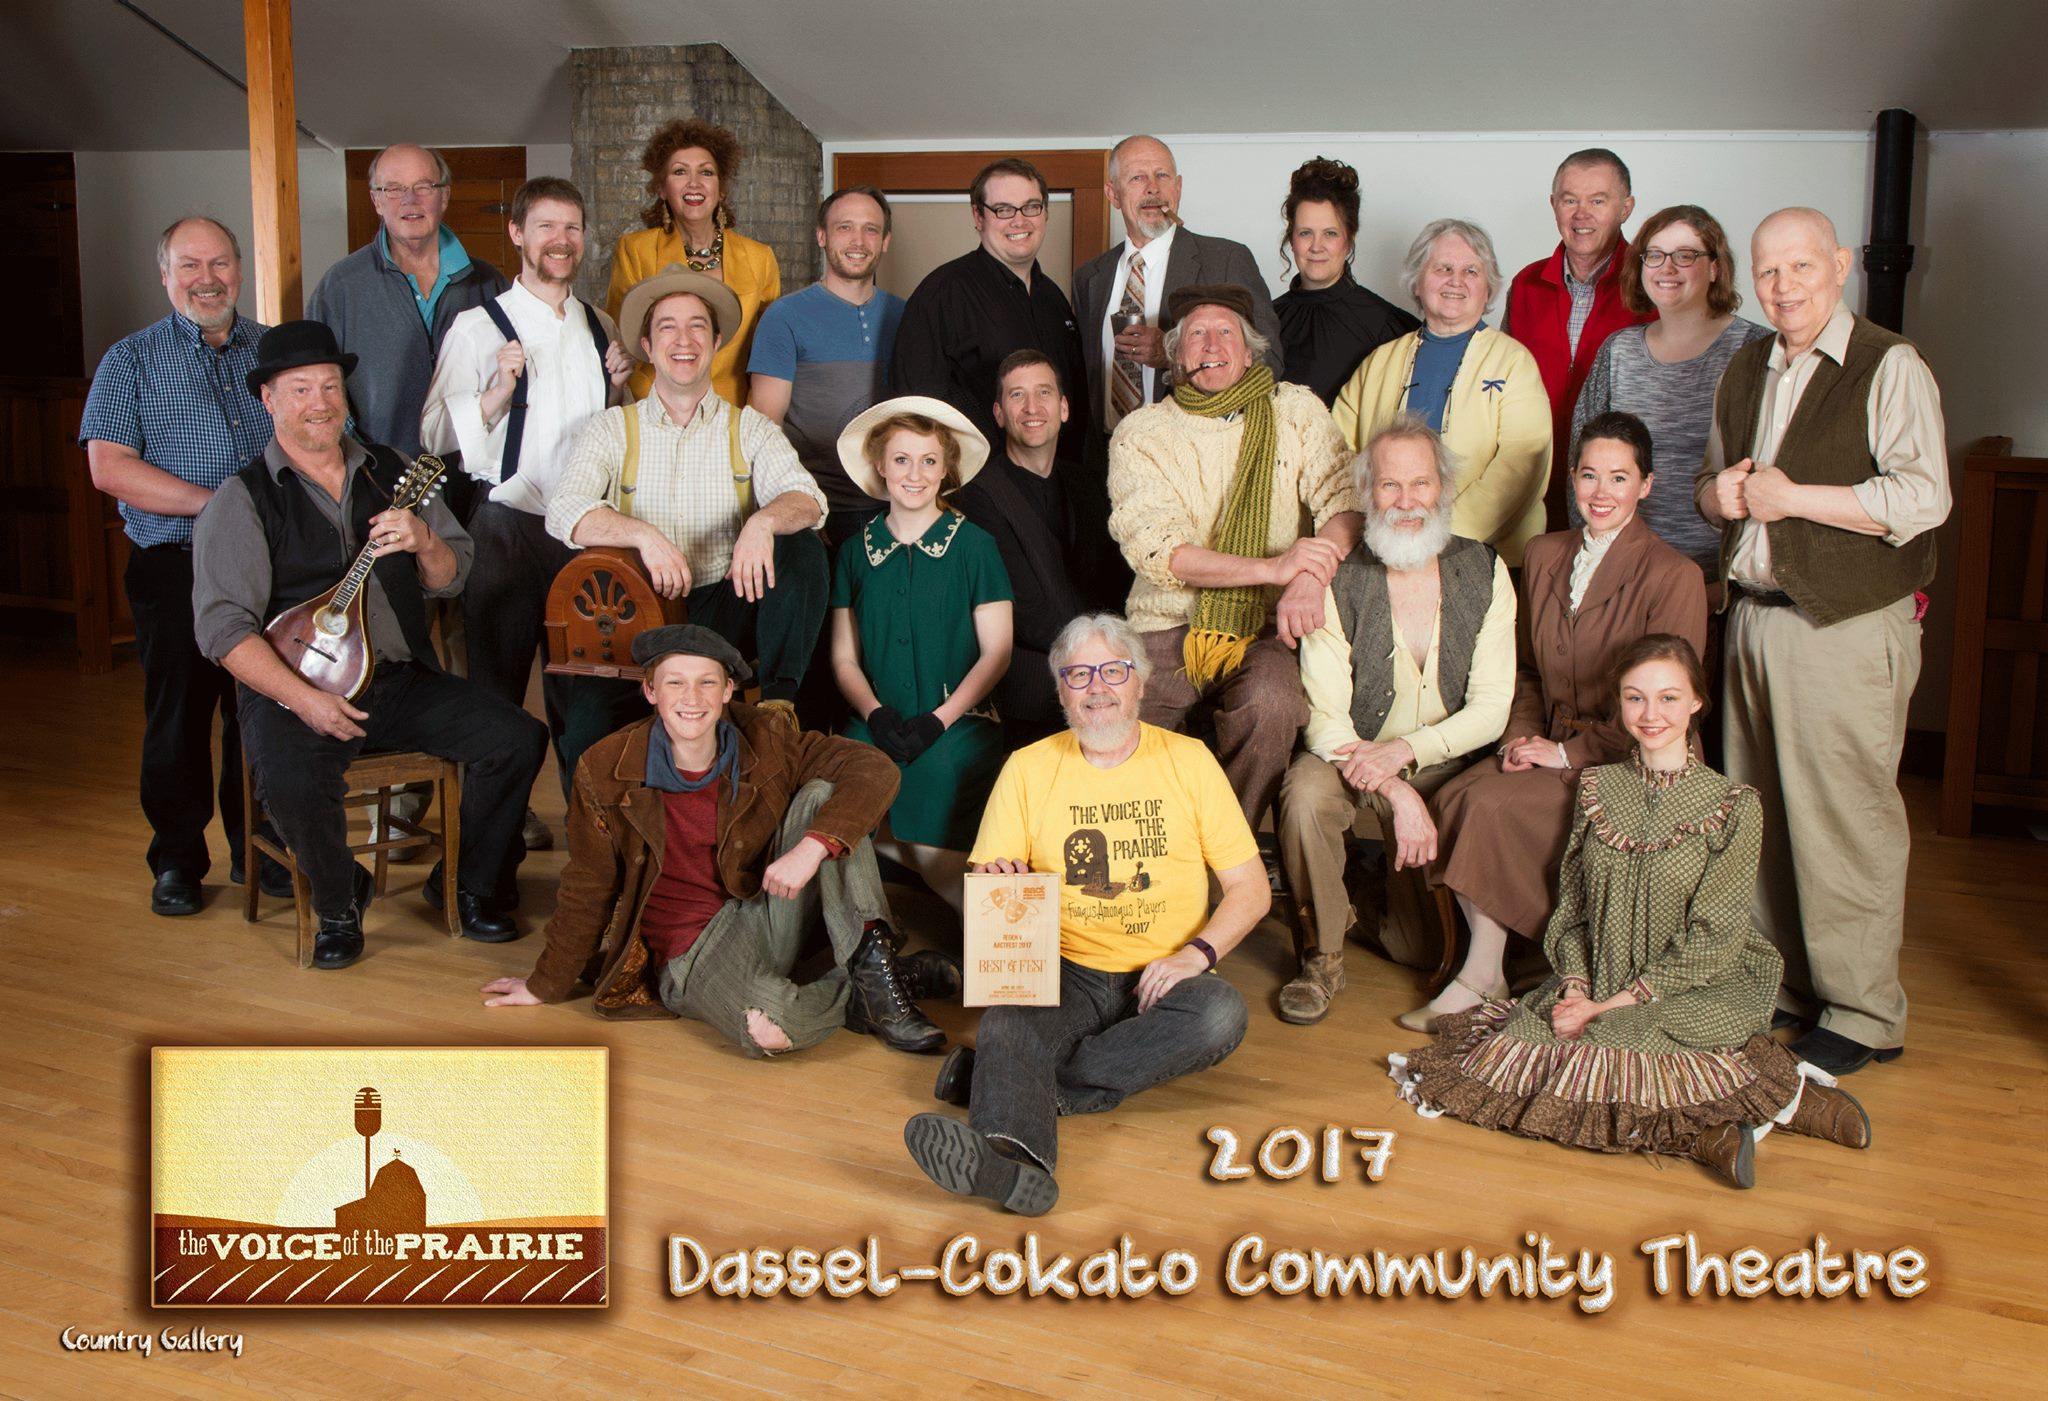 Voice of the Prairie - by John OliveDirected by David Metcalf2017 AACTFest (advanced to Nationals)Pictured from Left to Right: (Front) Peter Dinius, David Metcalf, Ellen Mielke (Middle) Scott Hanson, Tom Langemo, Jaclyn Rose-Thorson, Tim Gossweiler, Kurt Schulz, Ron Hungerford, Shara Marquez (Back) John Ryan, Butch Amundsen, Neal Hungerford, Deborah Moen, Chris Halstead, Tom Nelson, Jon Benson, Rhea Langemo, Linda Metcalf, Jim Veith, Elisabeth Nelson, Mike Ackerman